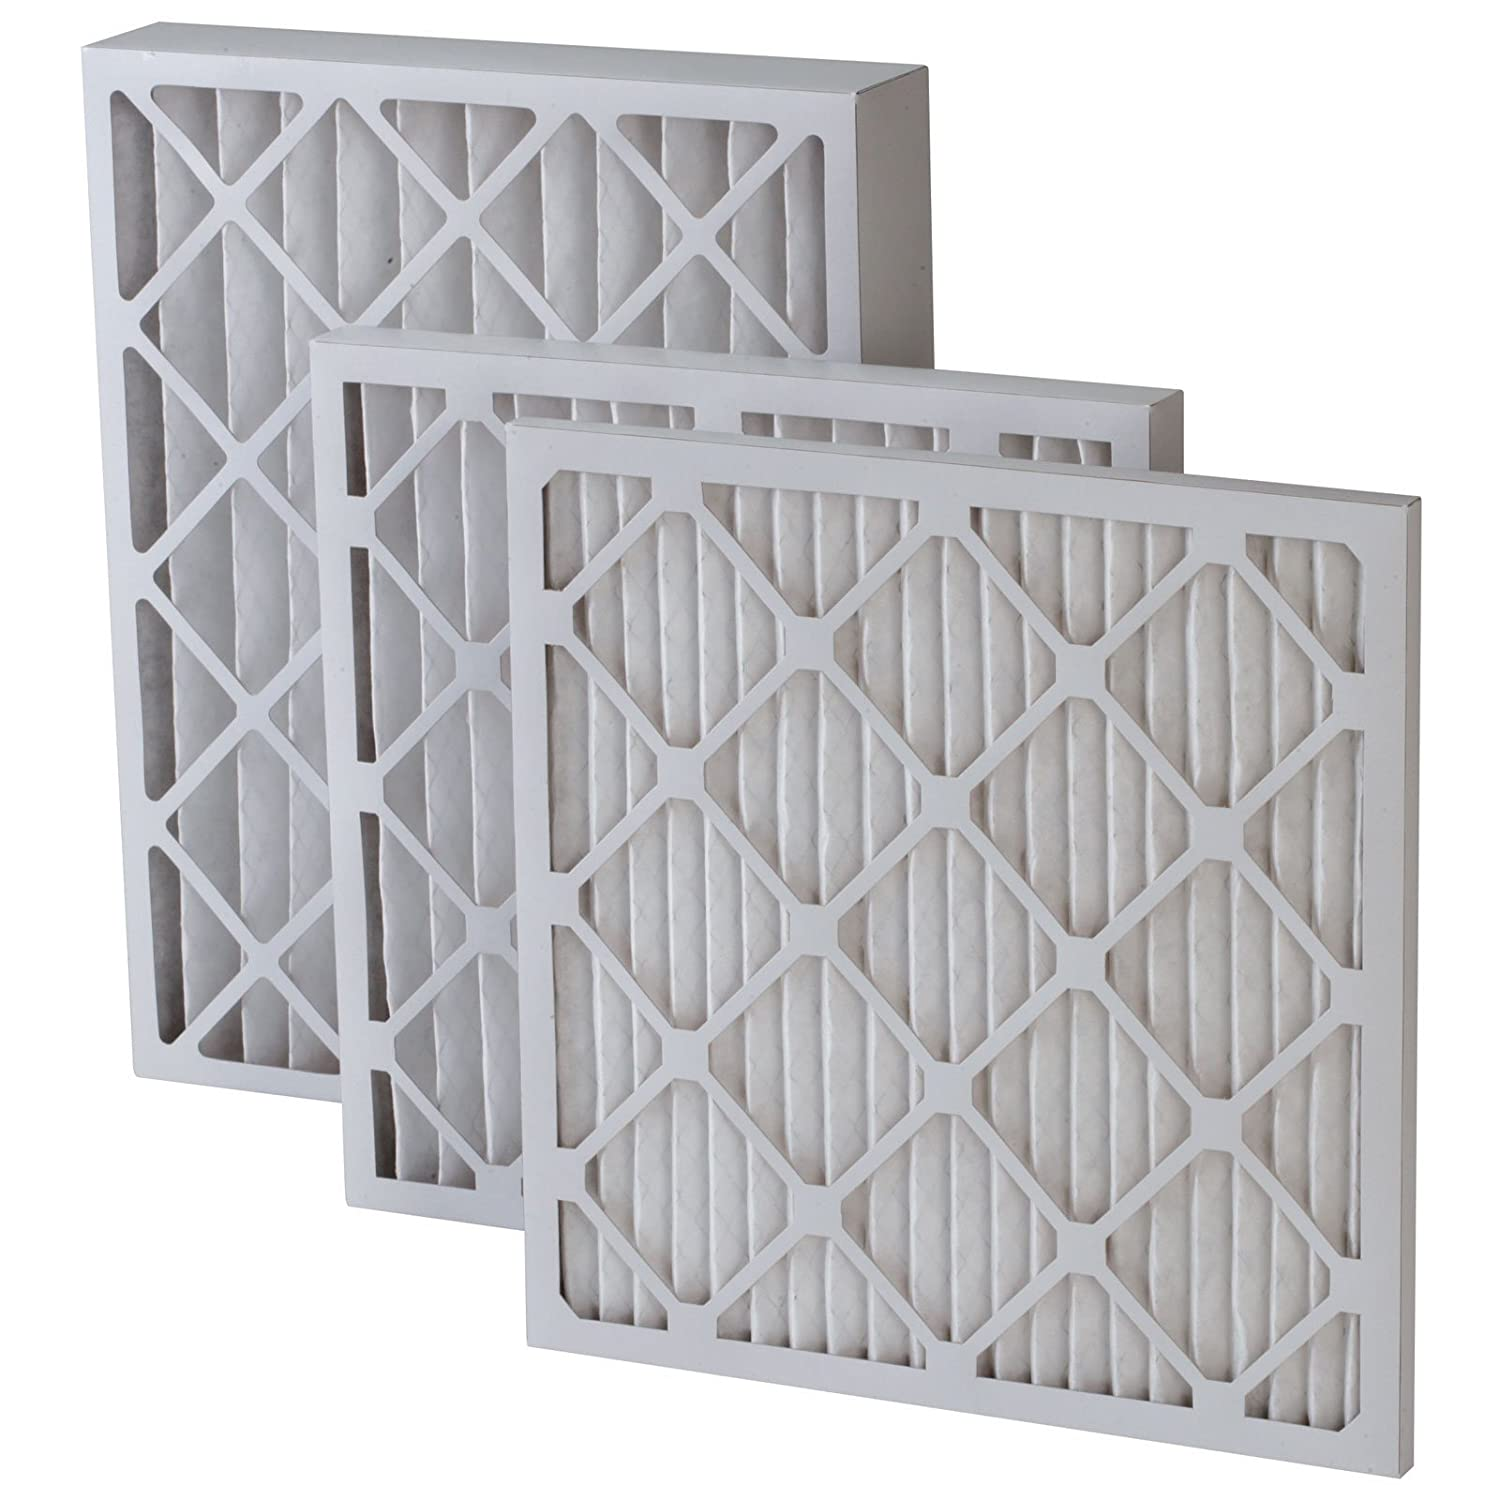 20x25x4 merv 8 furnace filter 6 pack replacement furnace filters amazoncom - Air Conditioner Filters